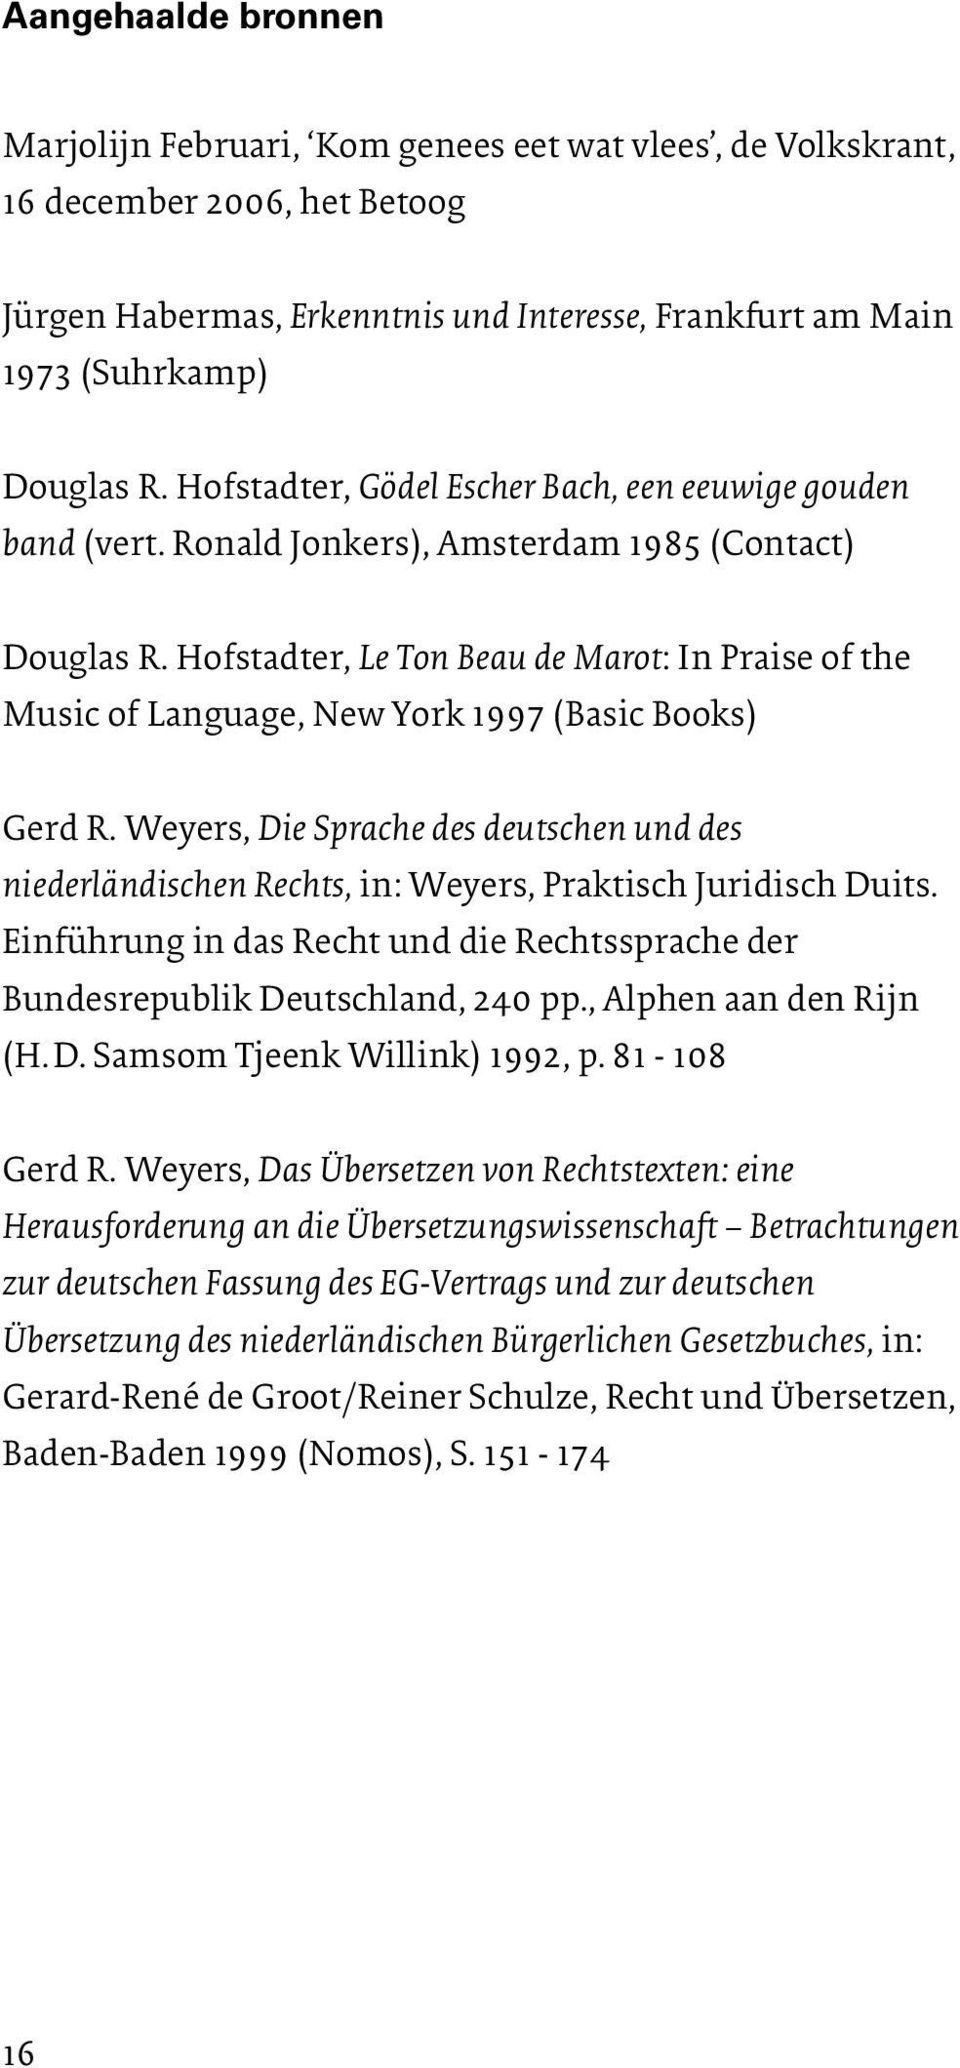 Hofstadter, Le Ton Beau de Marot: In Praise of the Music of Language, New York 1997 (Basic Books) Gerd R.